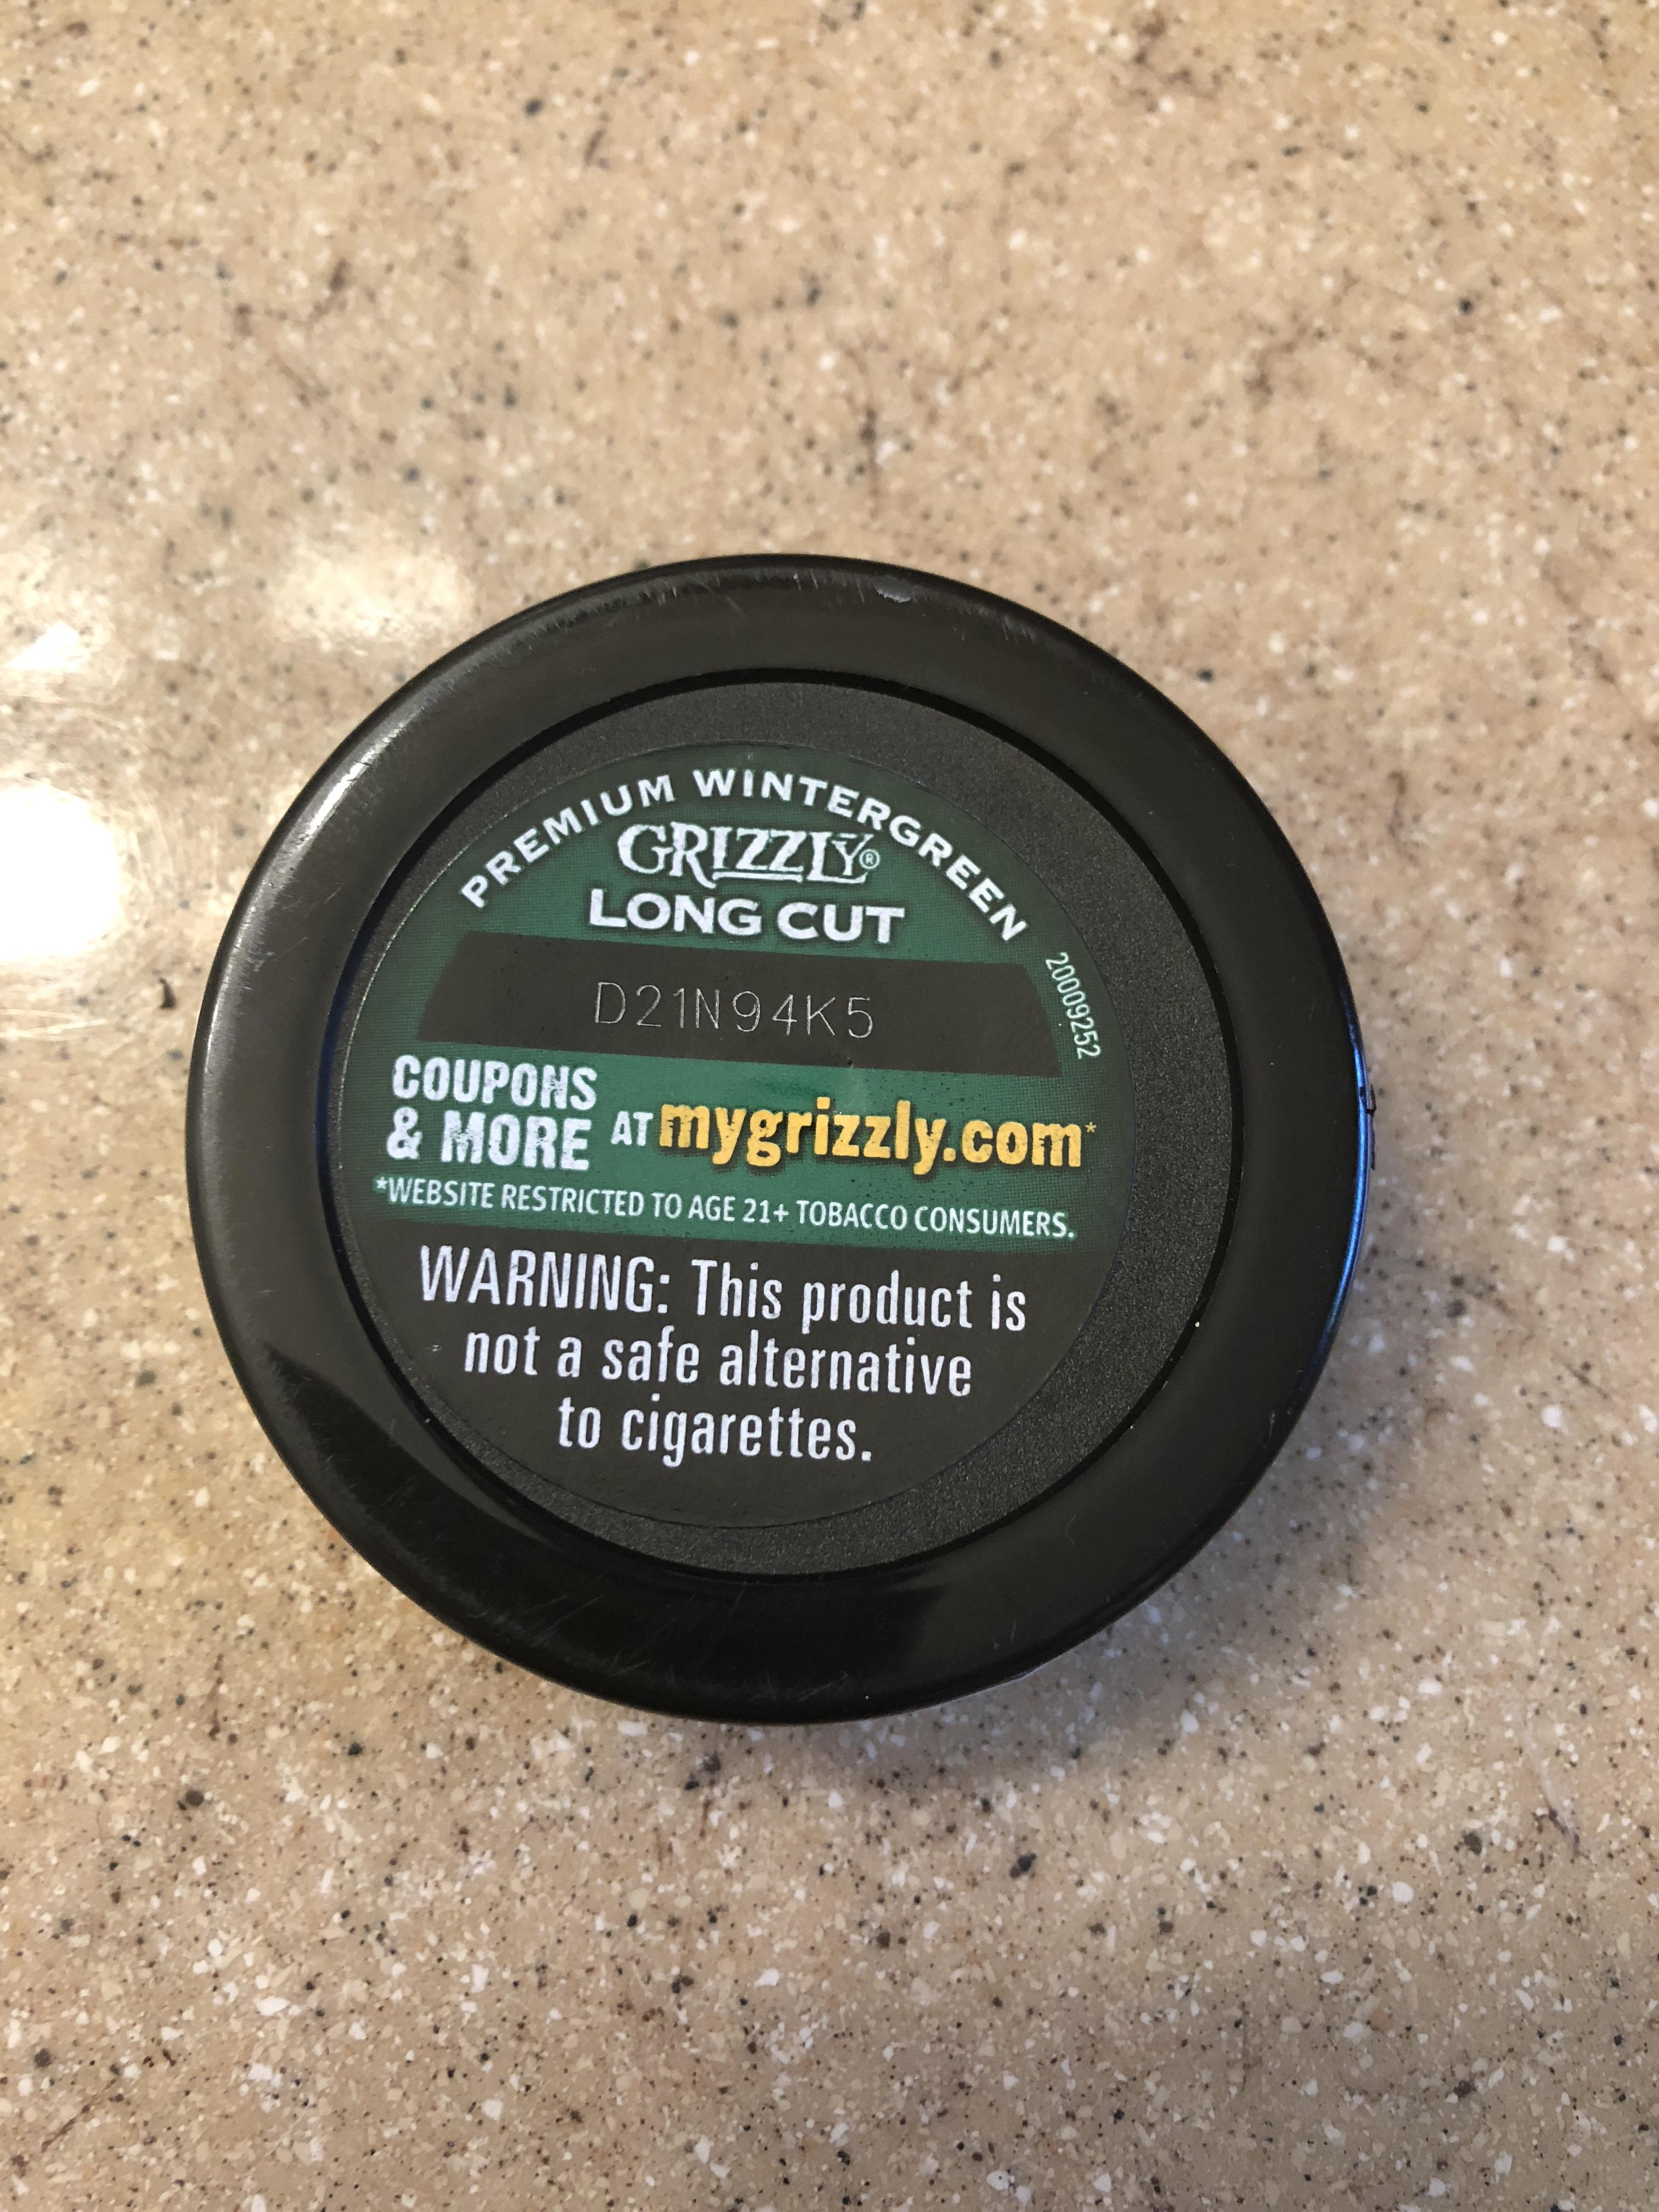 My Grizzly Coupons